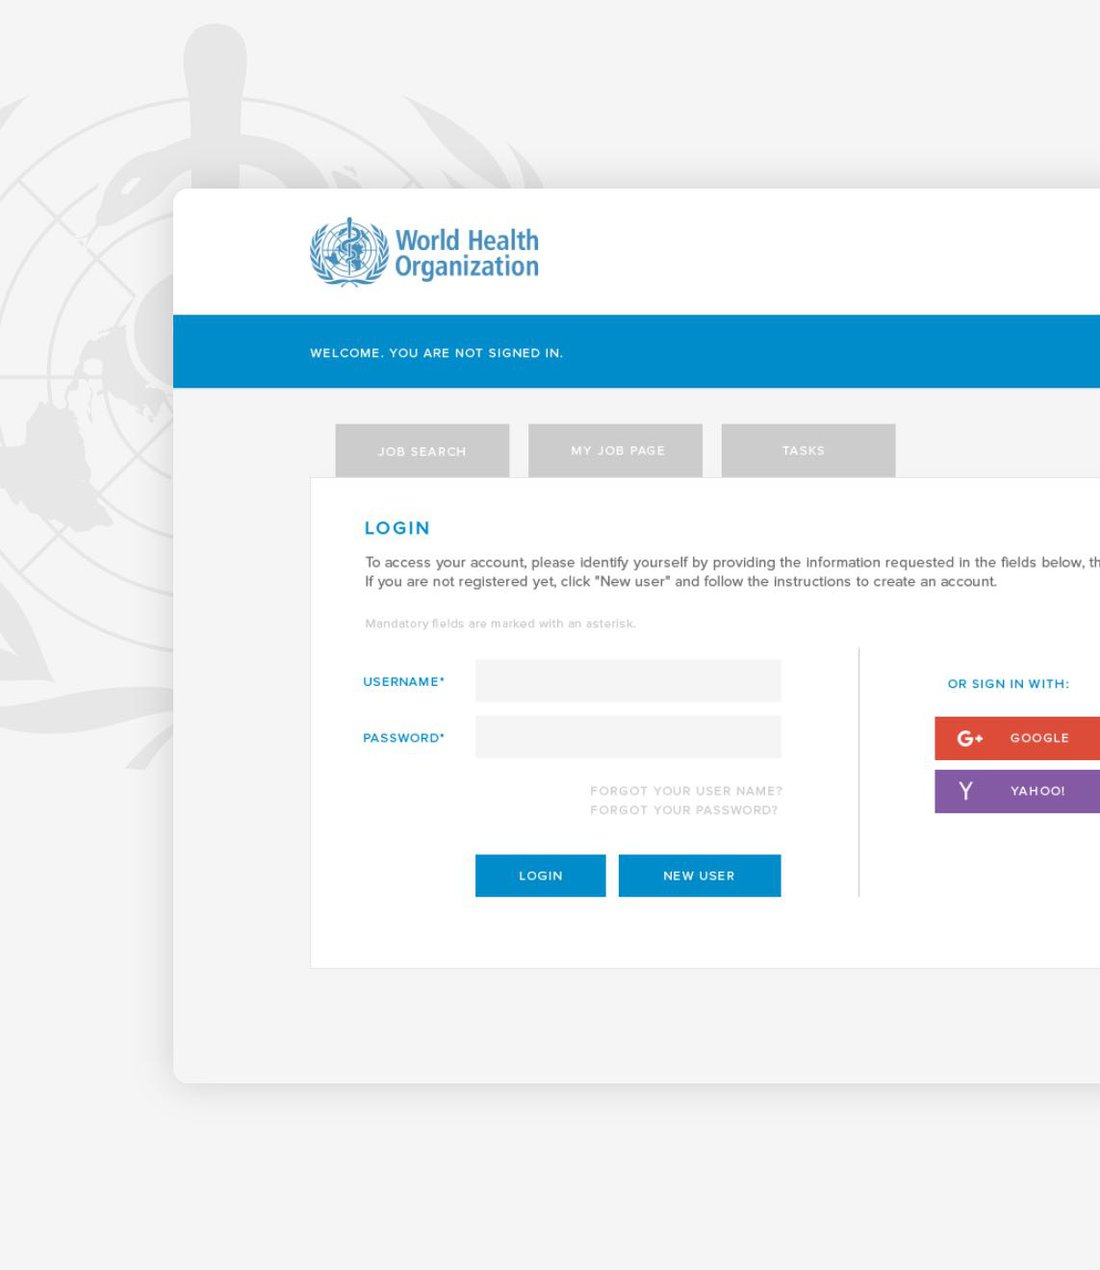 The World Health Organization Recruitment System